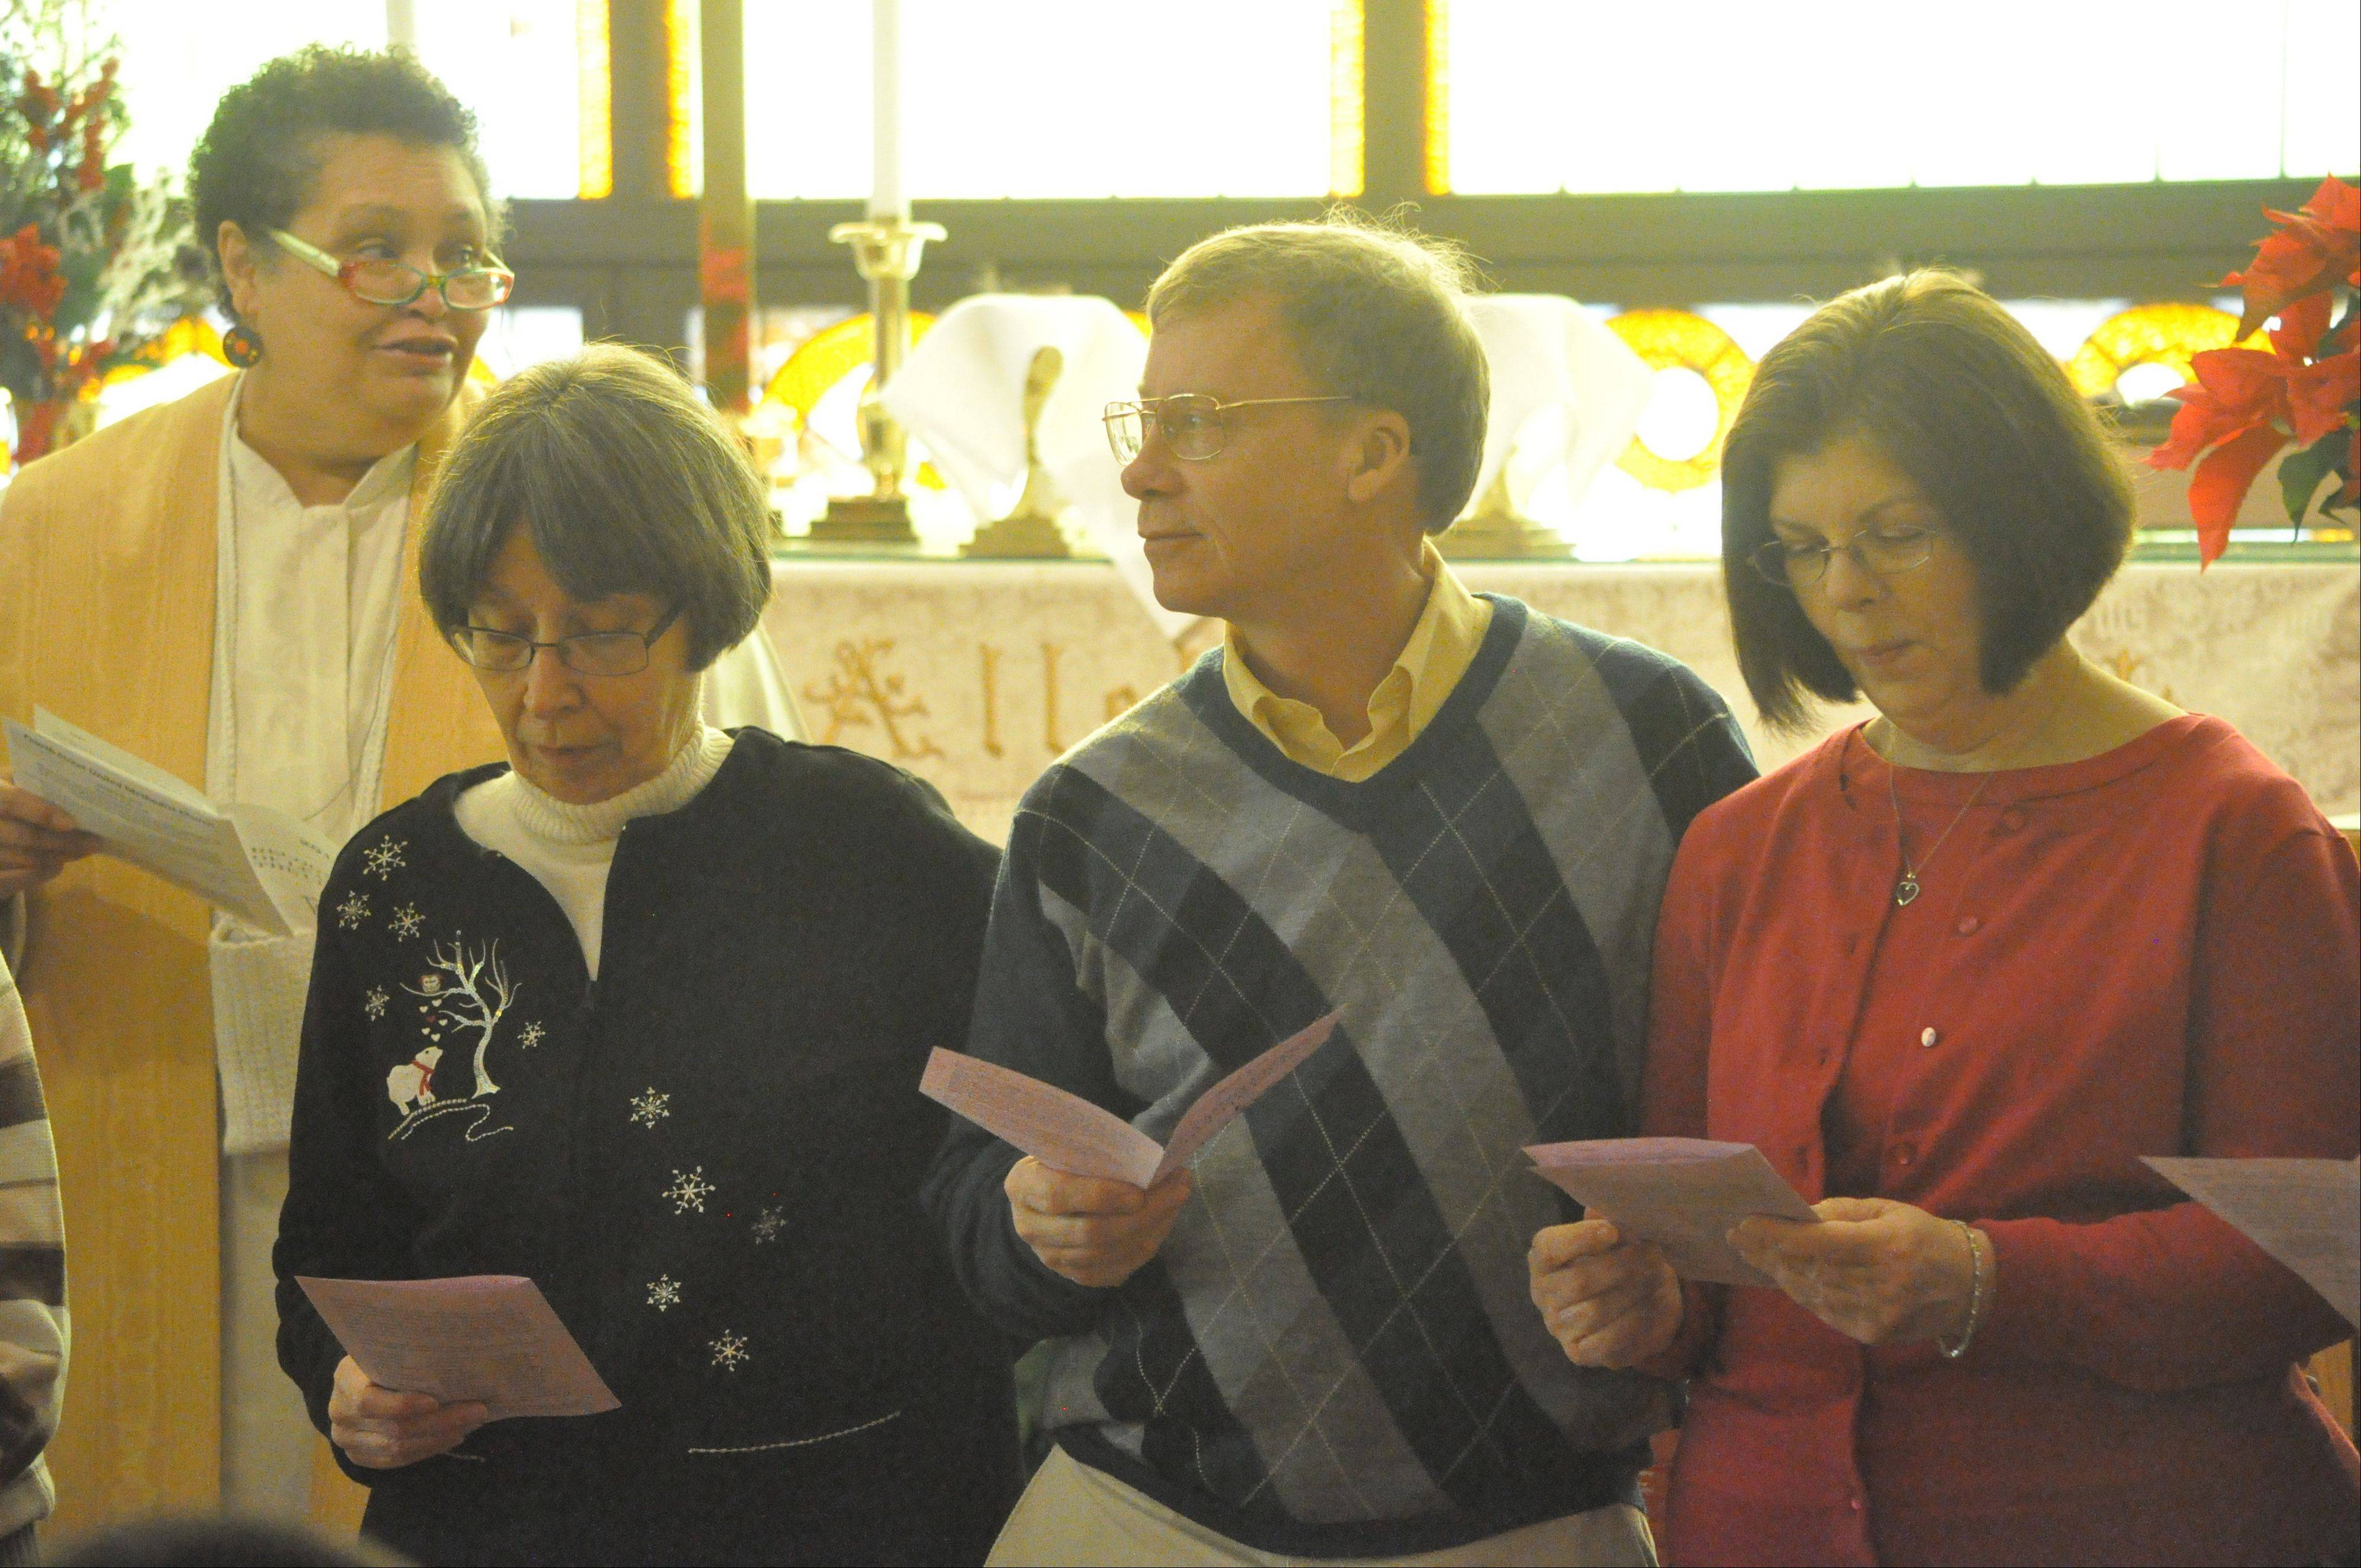 North Aurora resident Roger Spurgin, second from right, was among 45 people honored as leaders at Fourth Street United Methodist Church in Aurora Jan. 12. From left are the Rev. Deborah Tinsley Taylor, church pastor; Louise Hari, Aurora; Spurgin; and Linda Lipsey, Aurora. The first leader-recognition ceremony was held during 10 a.m. worship.